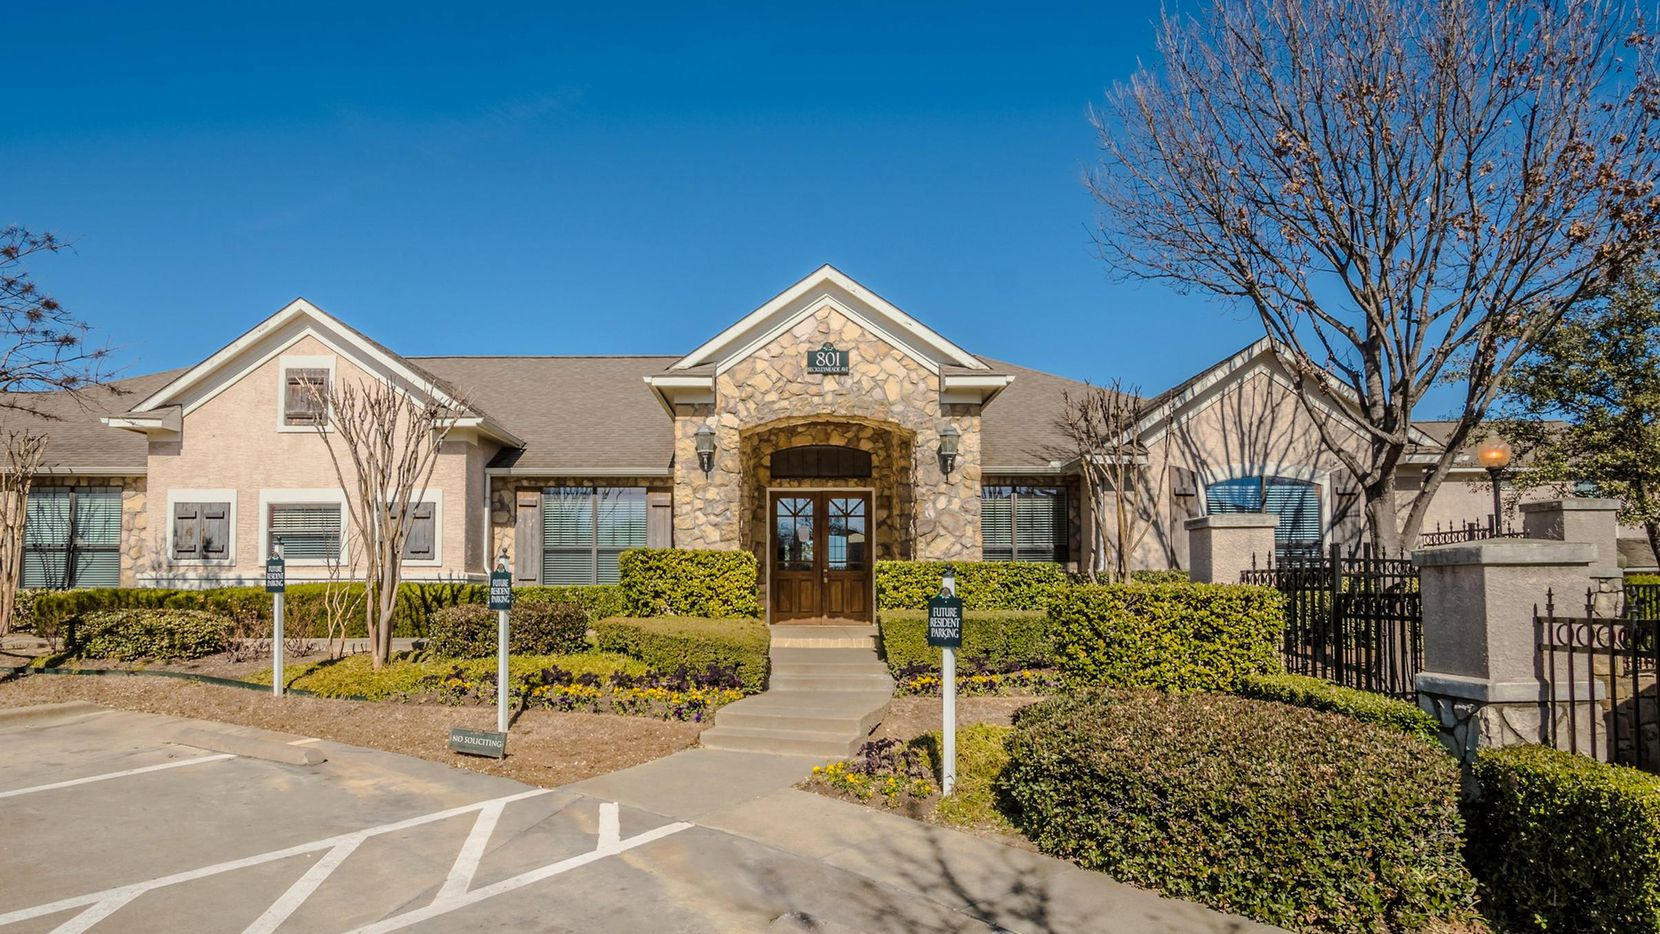 Dominium has purchased the Beckley Townhomes in Oak Cliff.